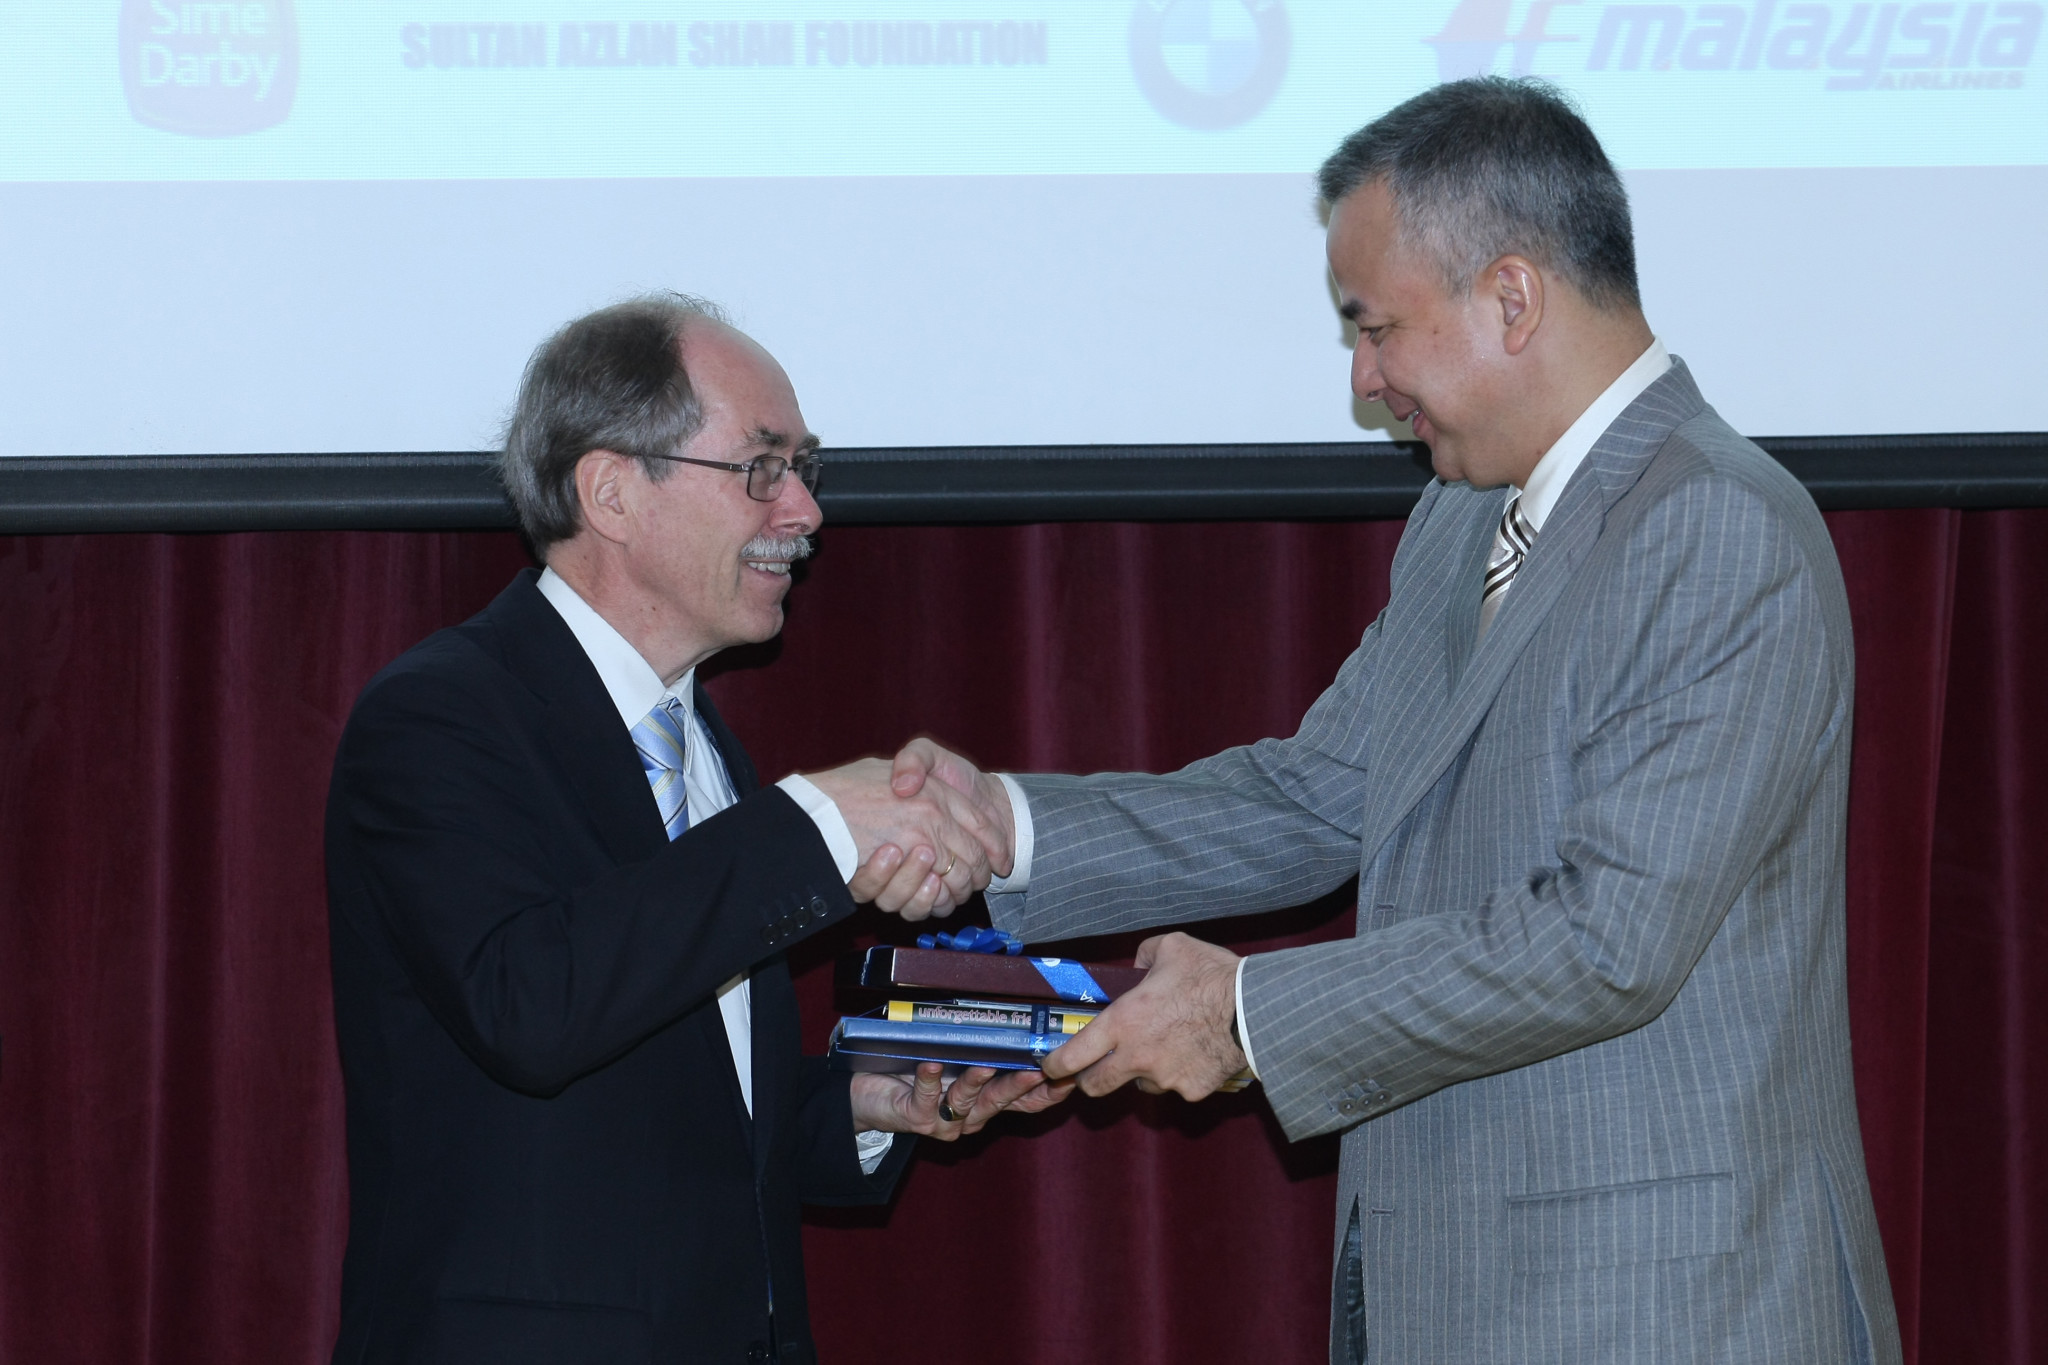 Physics Nobel Laureate Prof. Gerardus 't Hooft with HRH Raja Nazrin Shah, Crown Prince of the State of Perak and Malaysian Honorary Chairman of Bridges